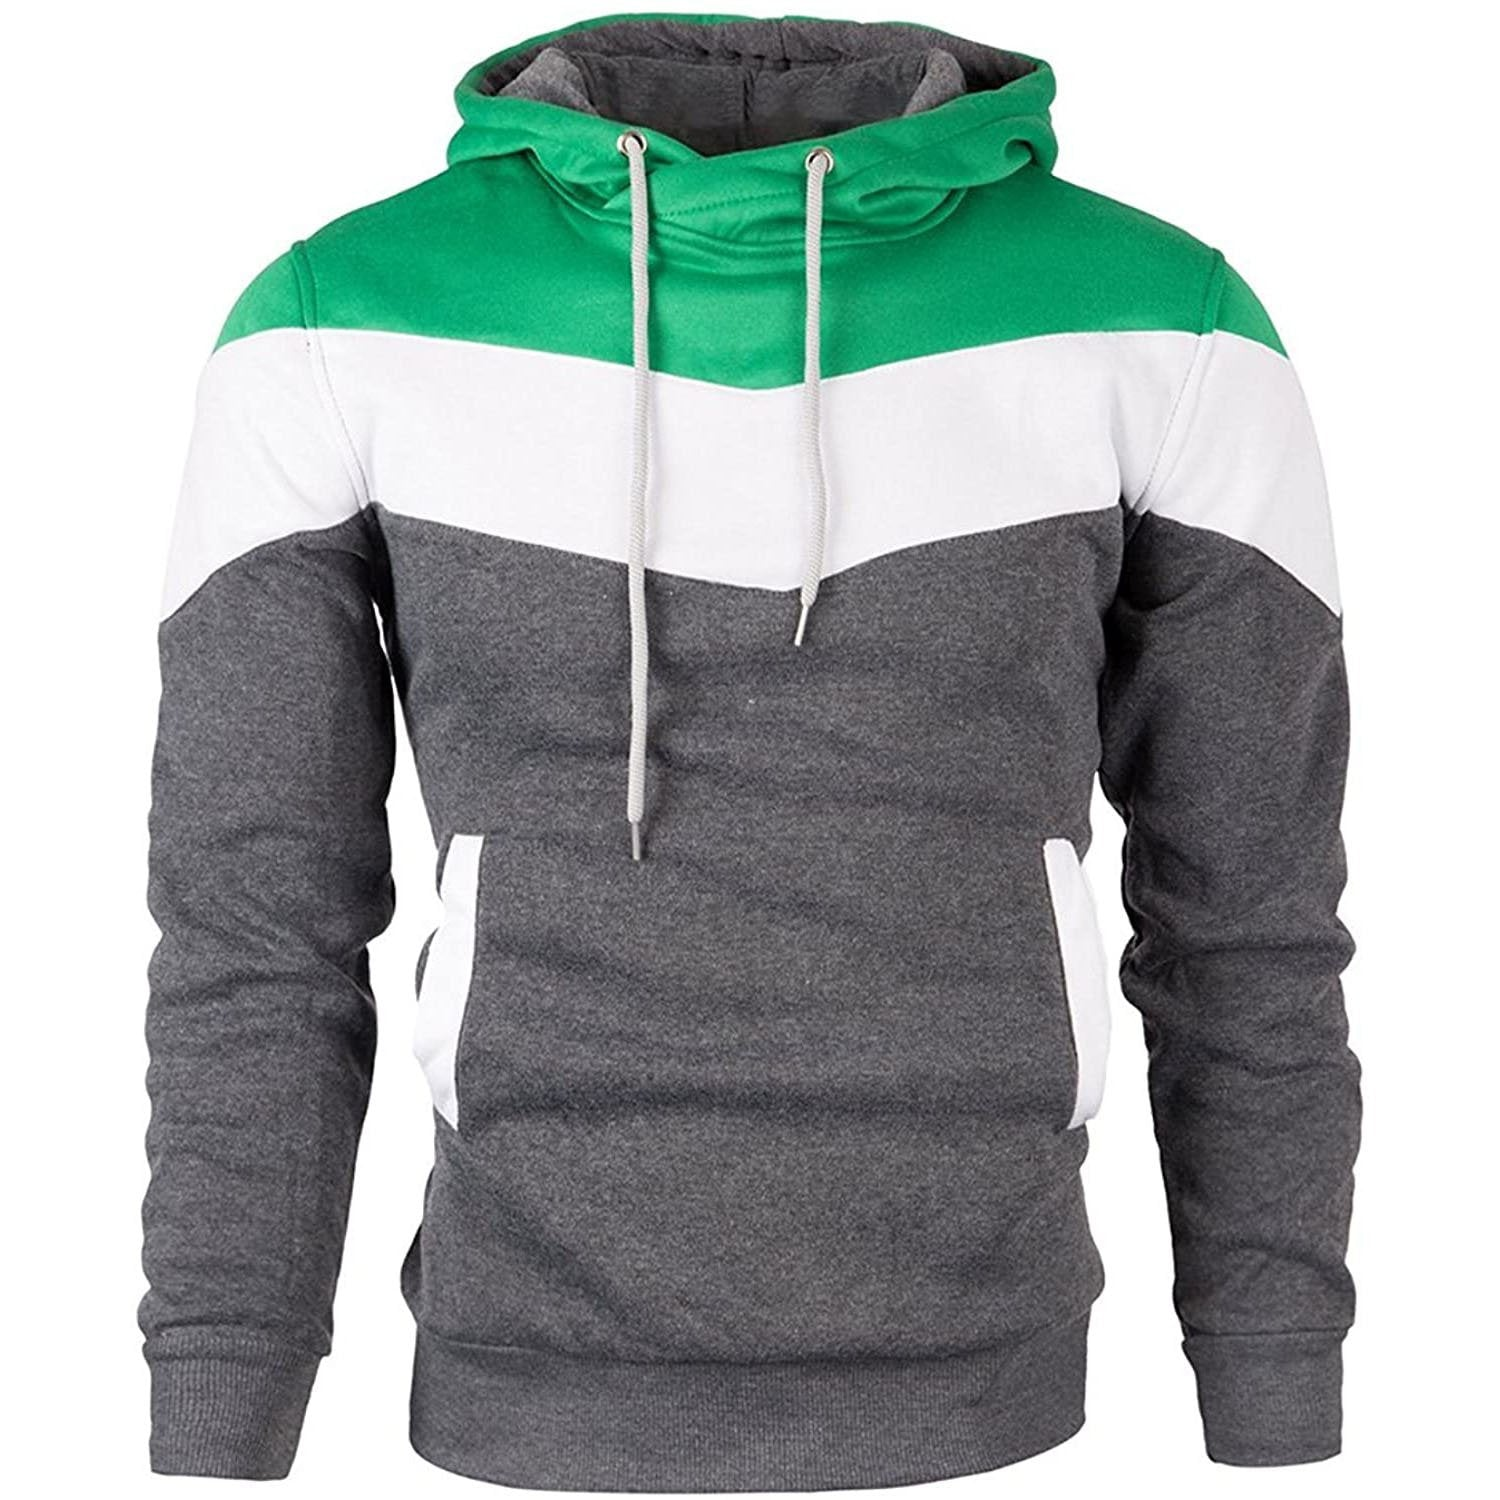 Multi Color Pullover Hoodie - Green/White/Grey